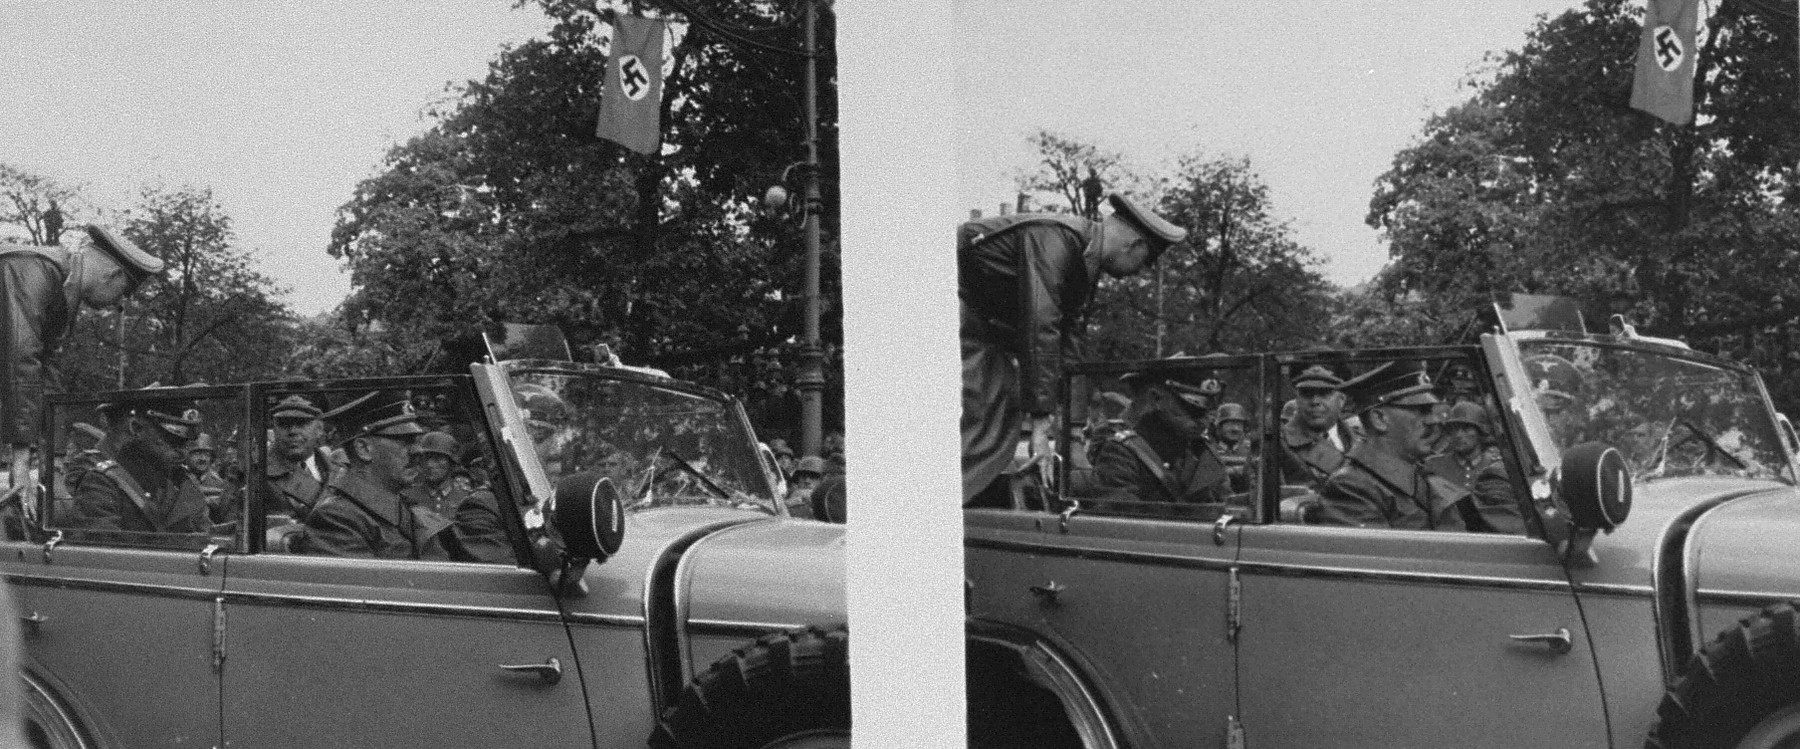 Stereoscopic photograph of Adolf Hitler and other Nazi officials leaving the viewing stand following a victory parade in Warsaw celebrating the German conquest of Poland.